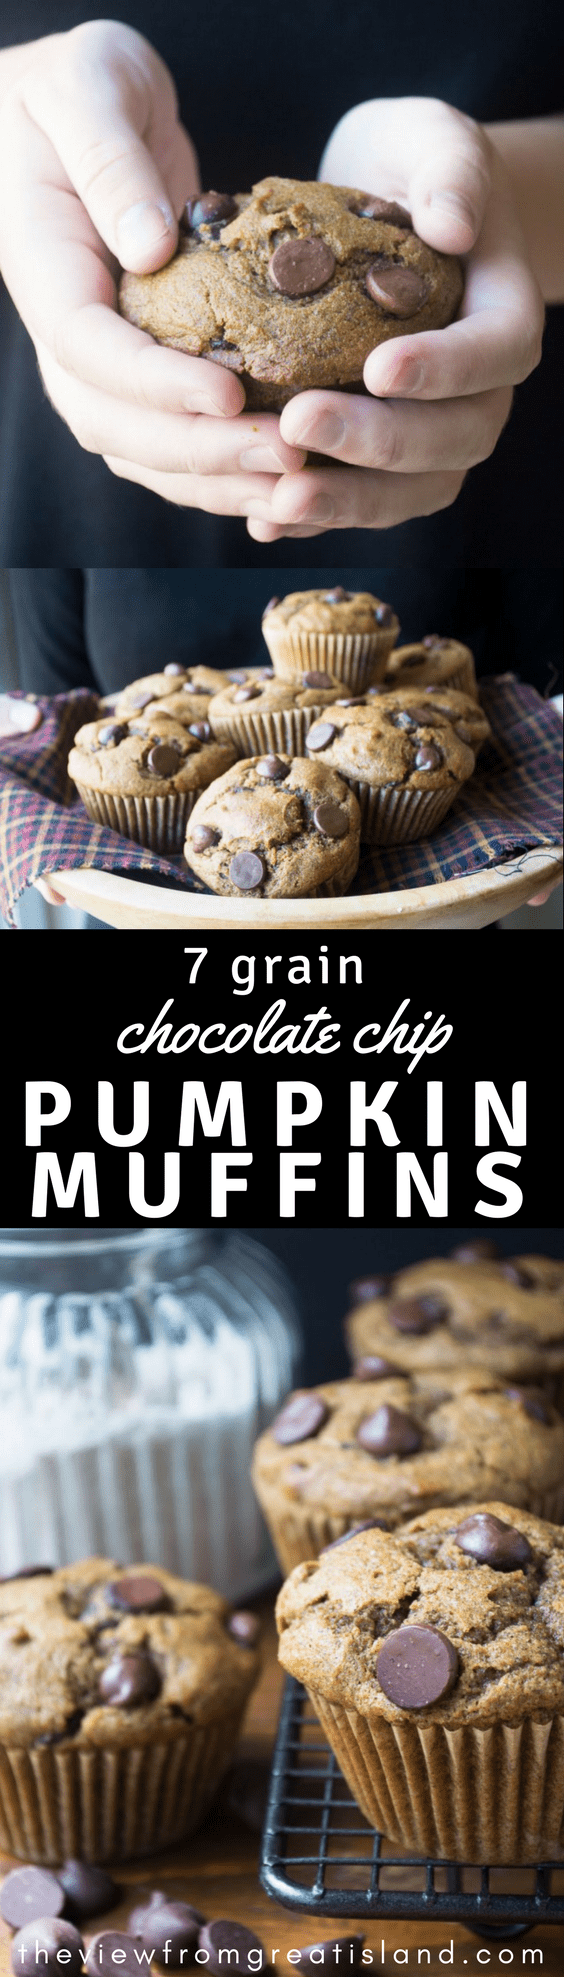 7-Grain Pumpkin Chocolate Chip Muffins ~ these amazingly healthy whole grain muffins are light and fluffy but pack a powerful nutritional punch with seven different types of whole grains! #healthy #healthymuffins #pumpkin #bestpumpkinmuffin #pumpkinchocolatechip #fall #breakfast #backtoschoolbreakfast #harvest #wholegrainmuffin #wholegrain